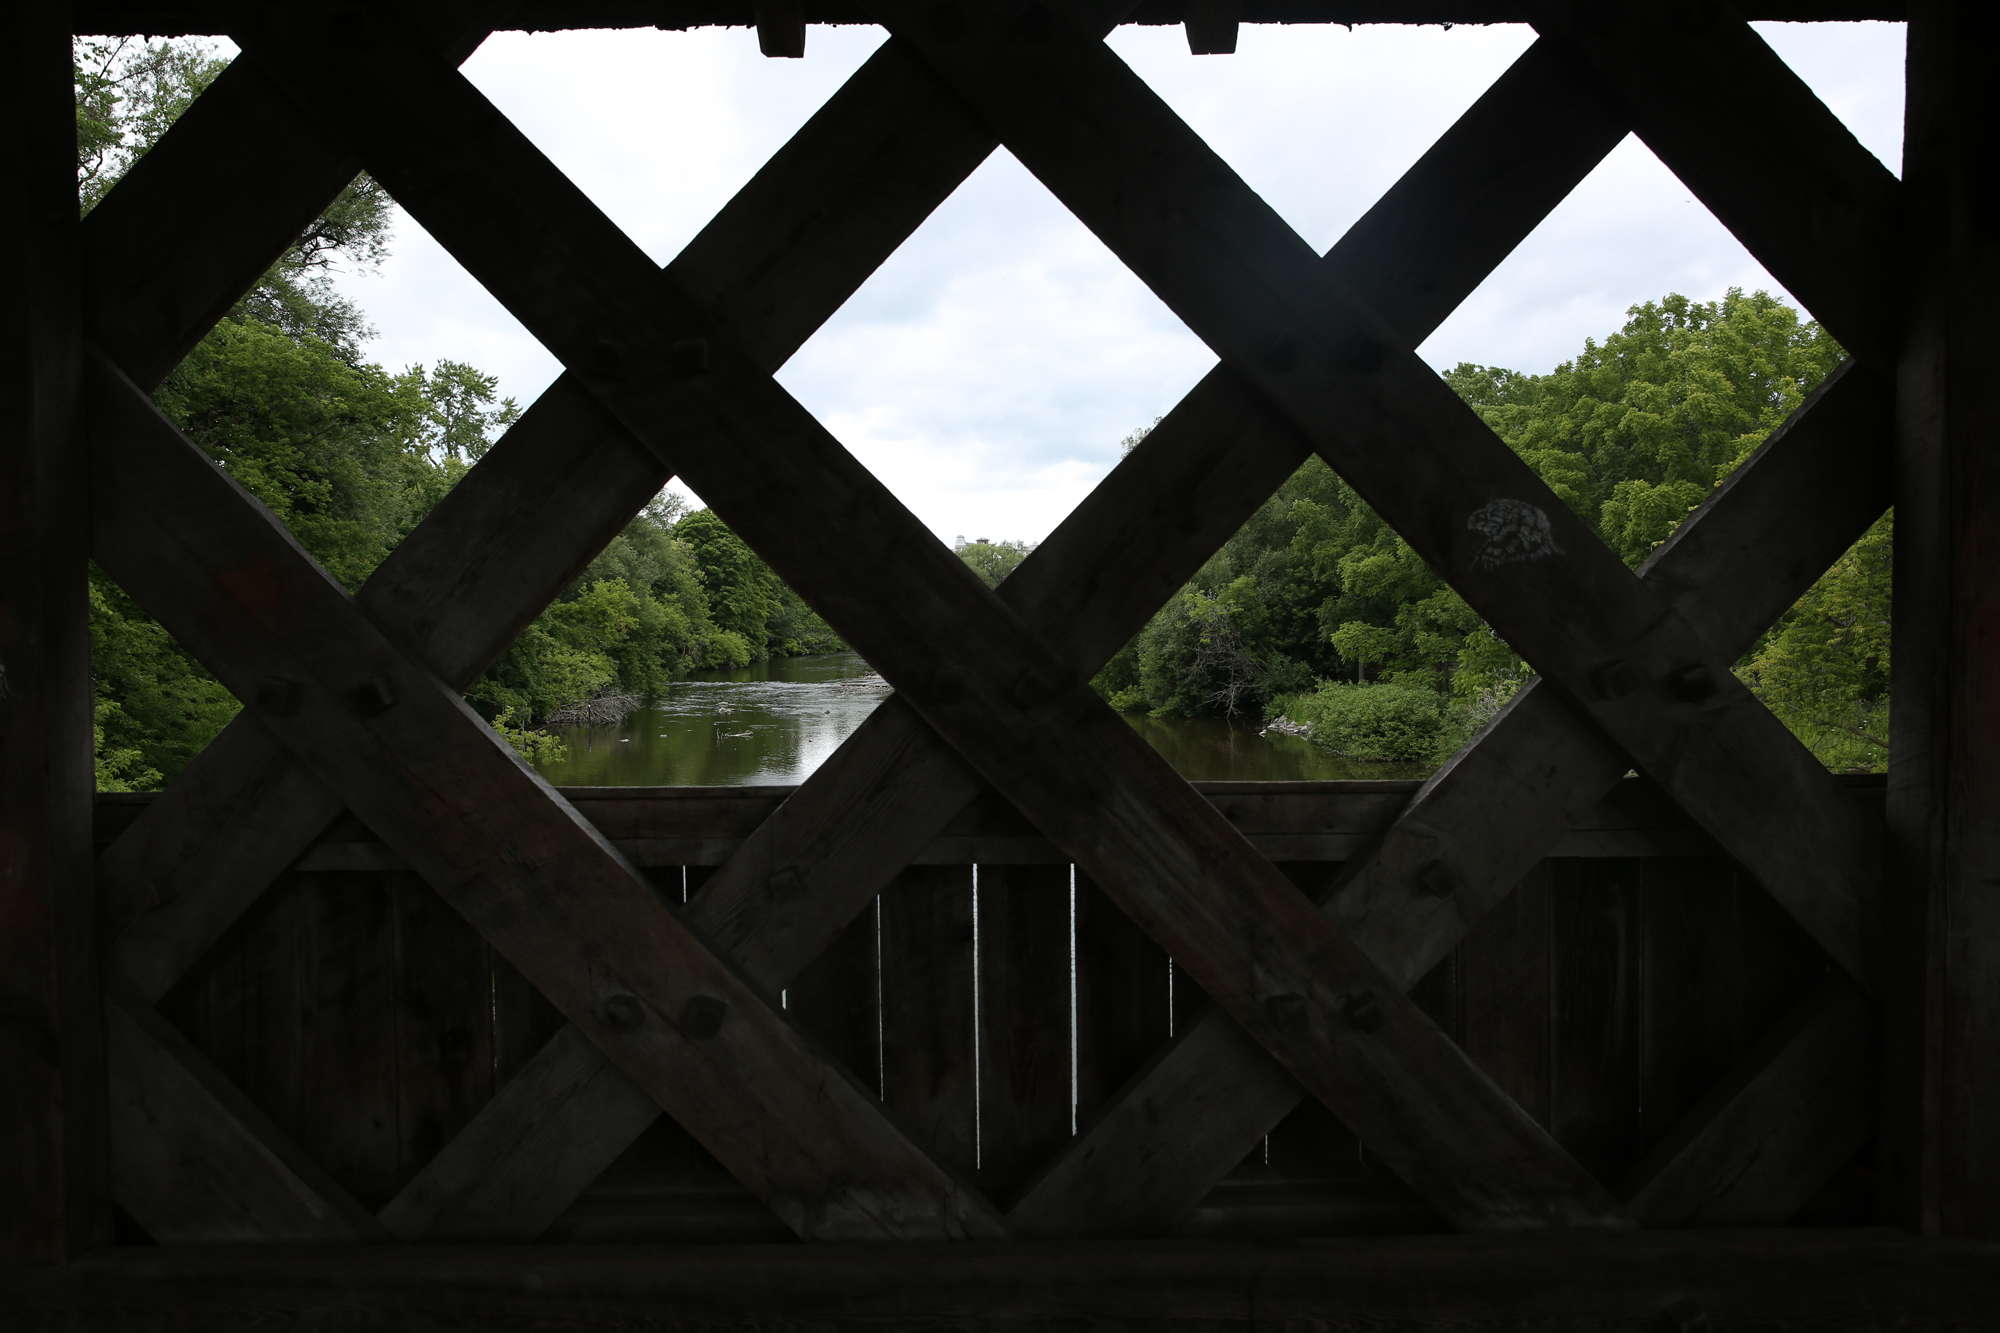 03 The Covered Bridge - Sounding the City 003 - Guelph 2018